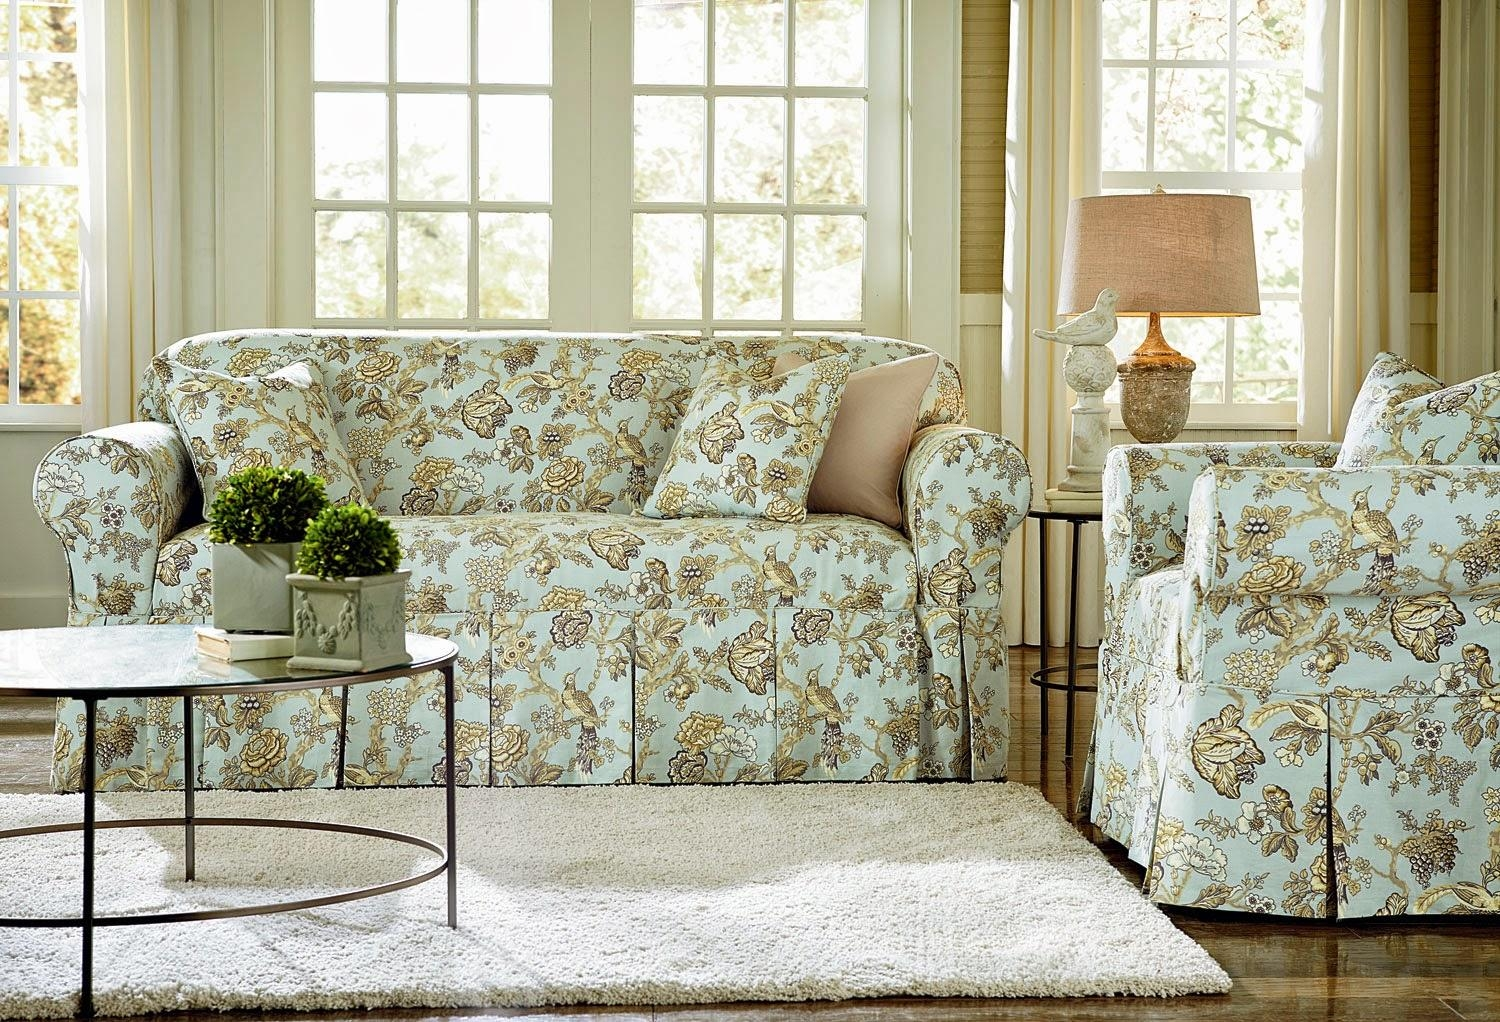 Sure Fit Slipcovers Blog Intended For Floral Sofas And Chairs (View 3 of 20)